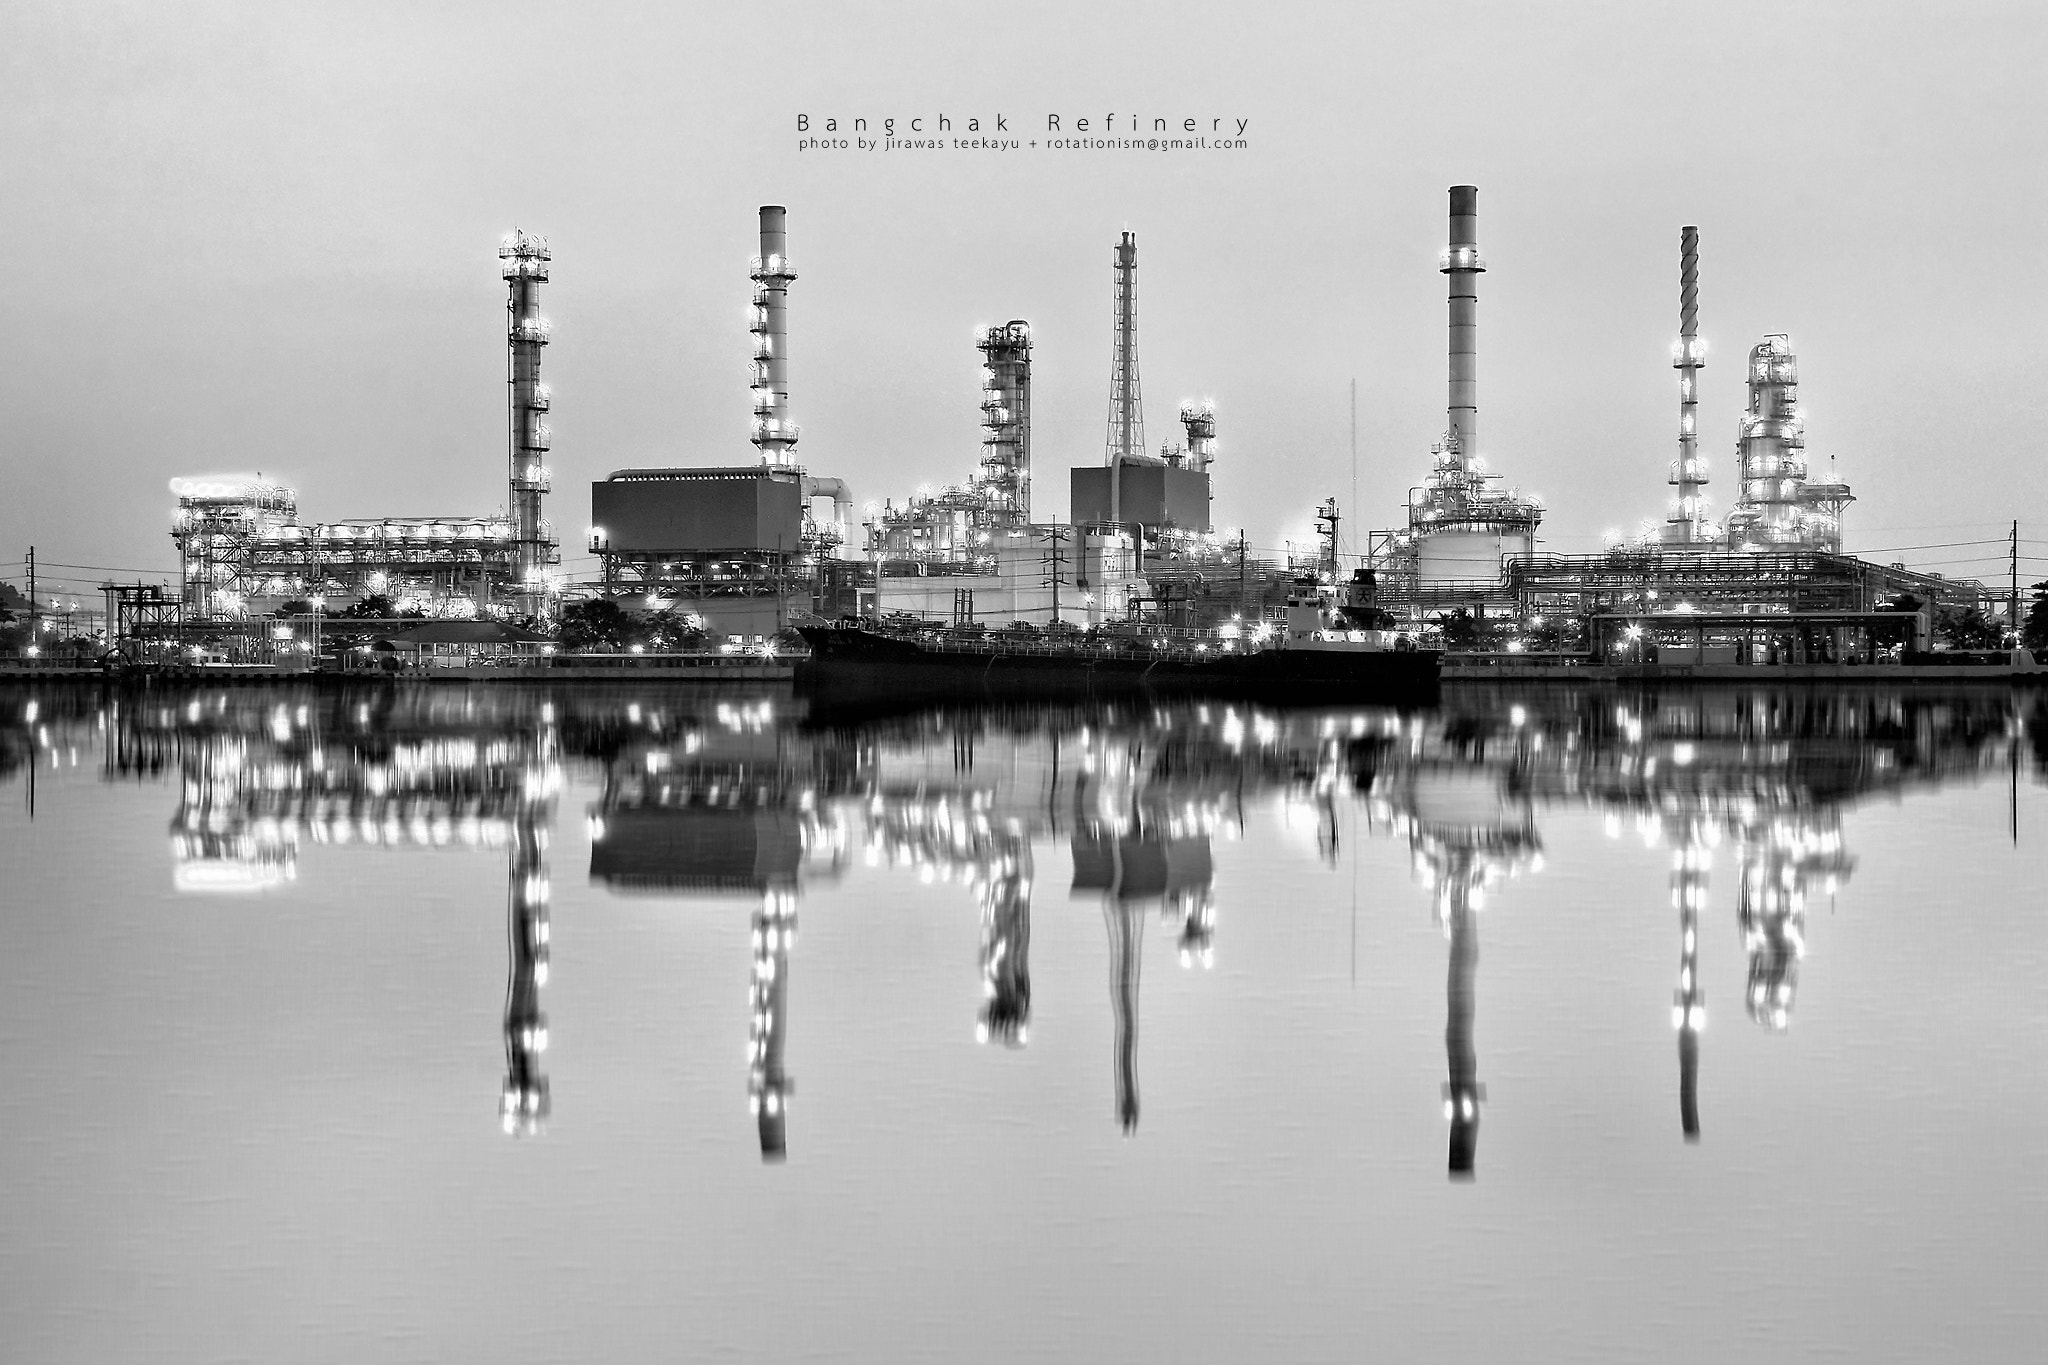 Photograph Refinery Reflection by Jirawas Teekayu on 500px